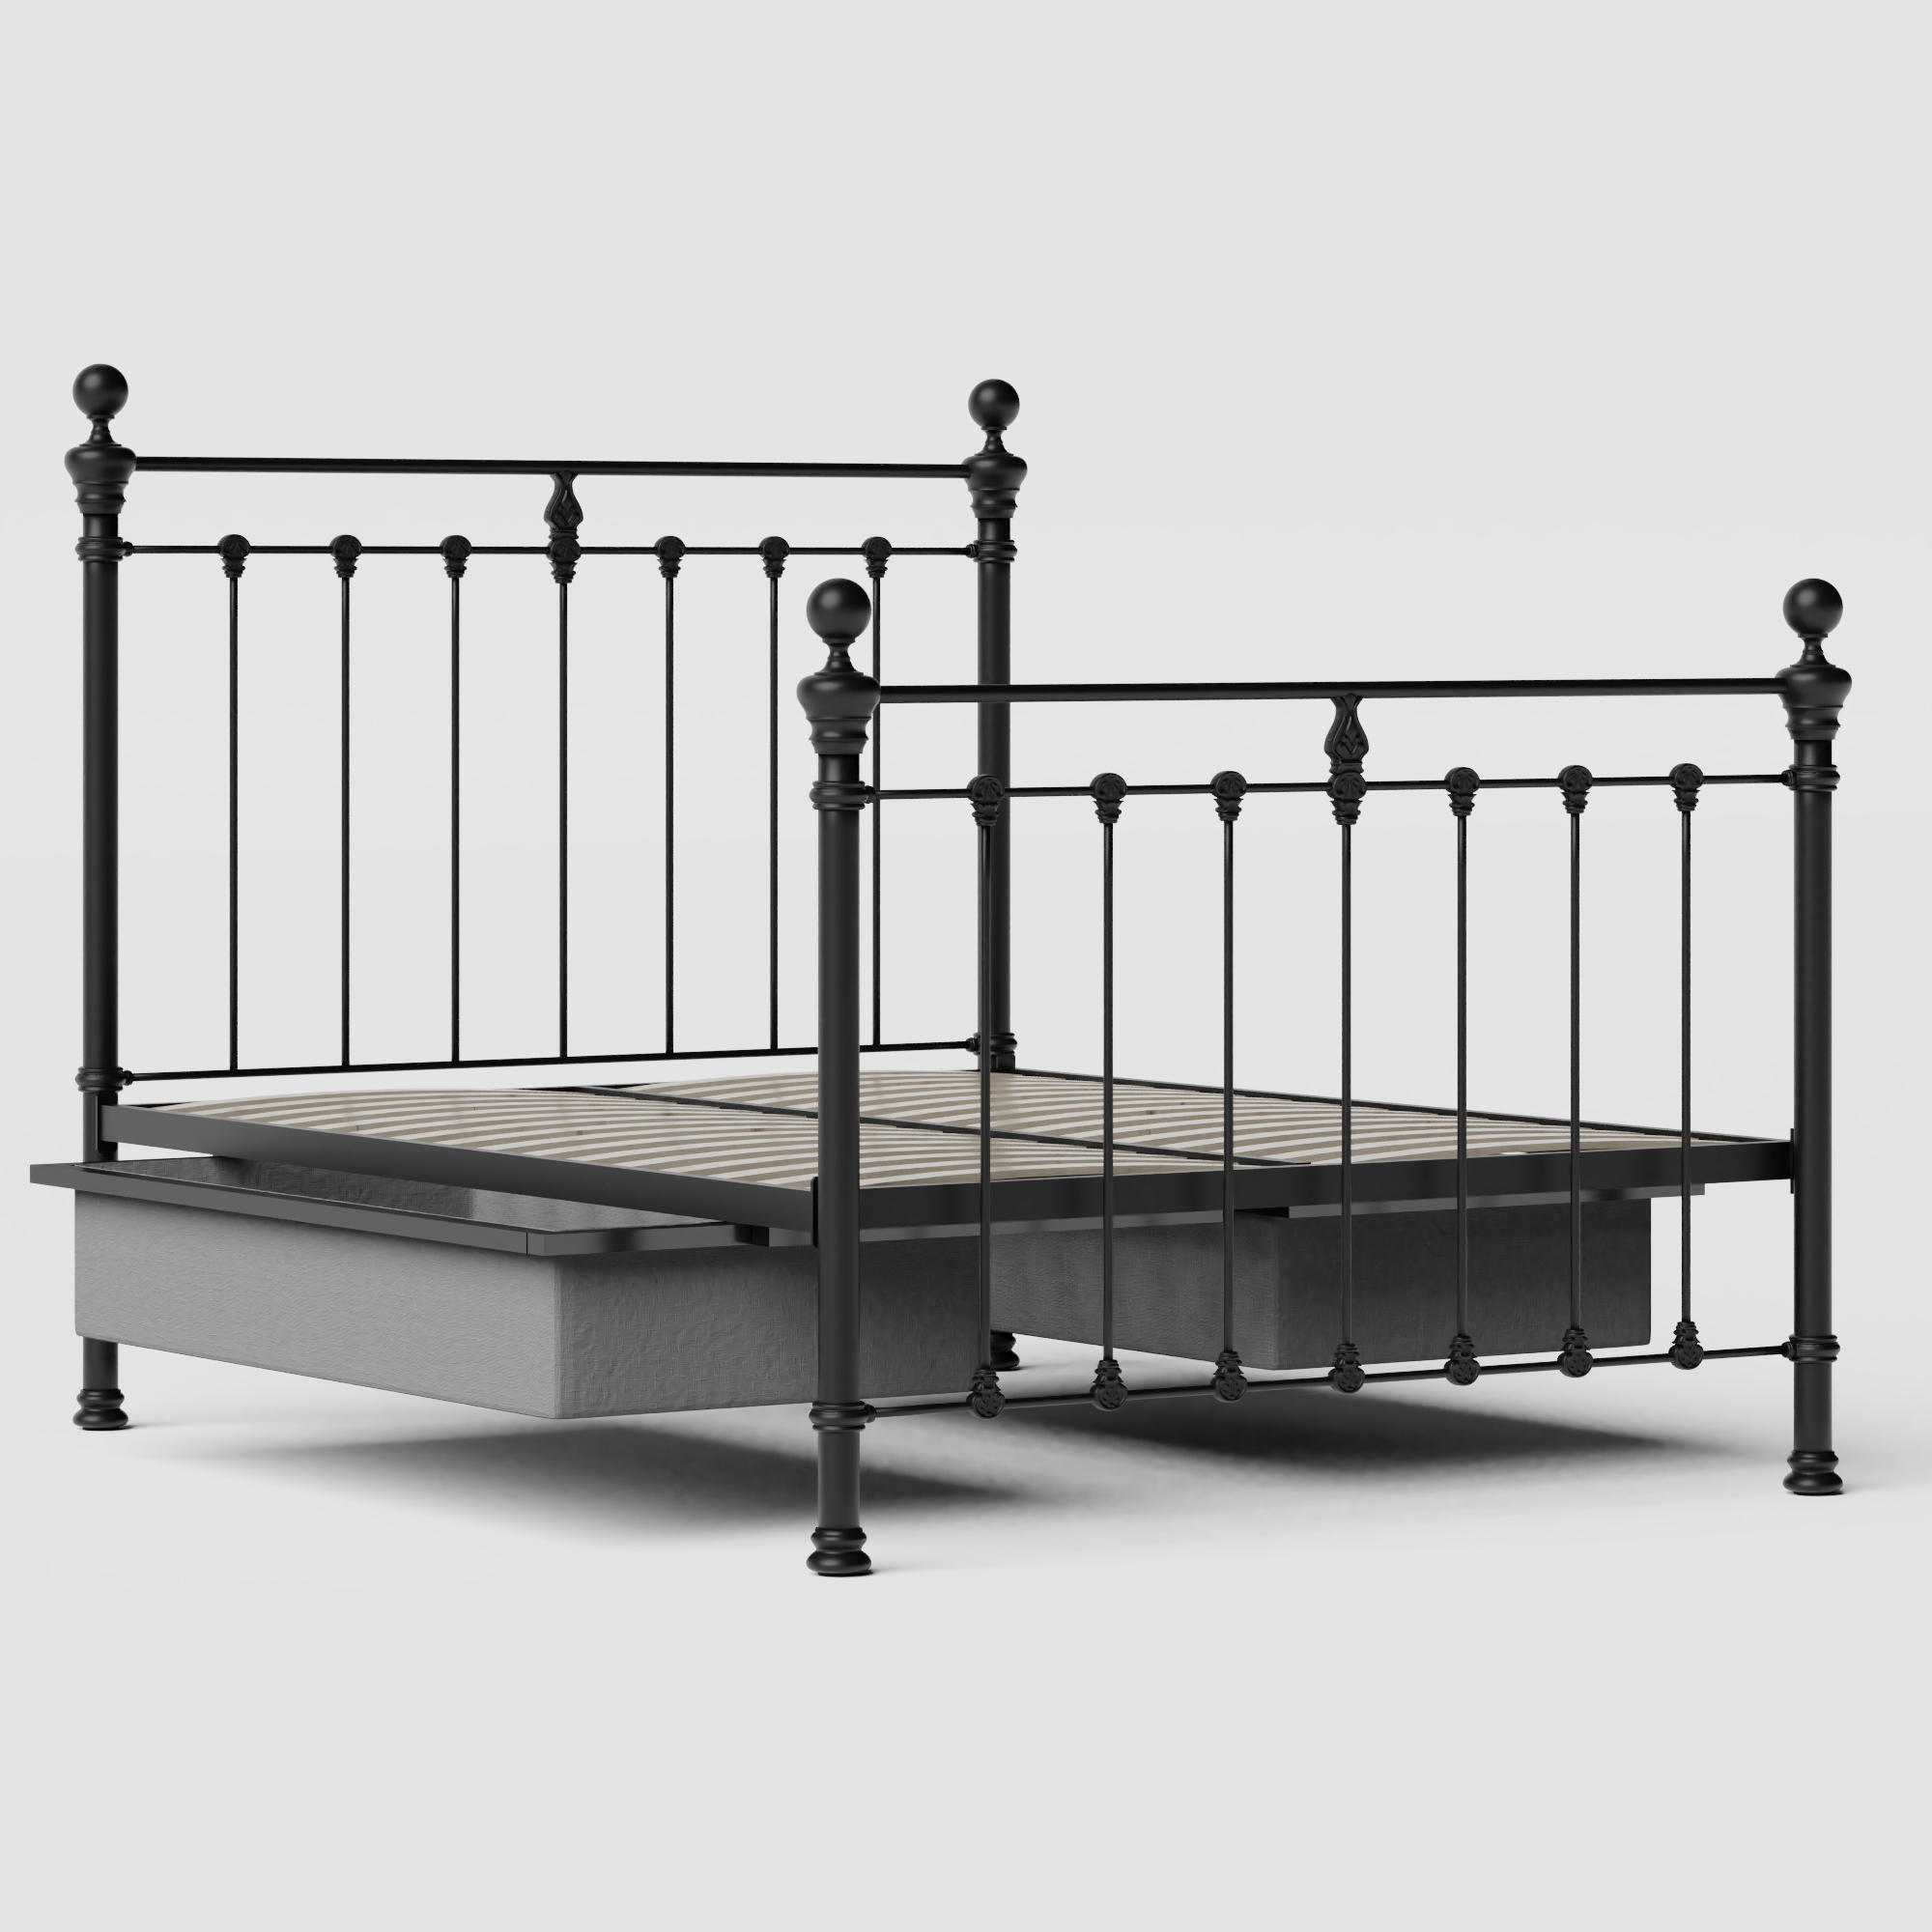 Hamilton Solo iron/metal bed in black with drawers